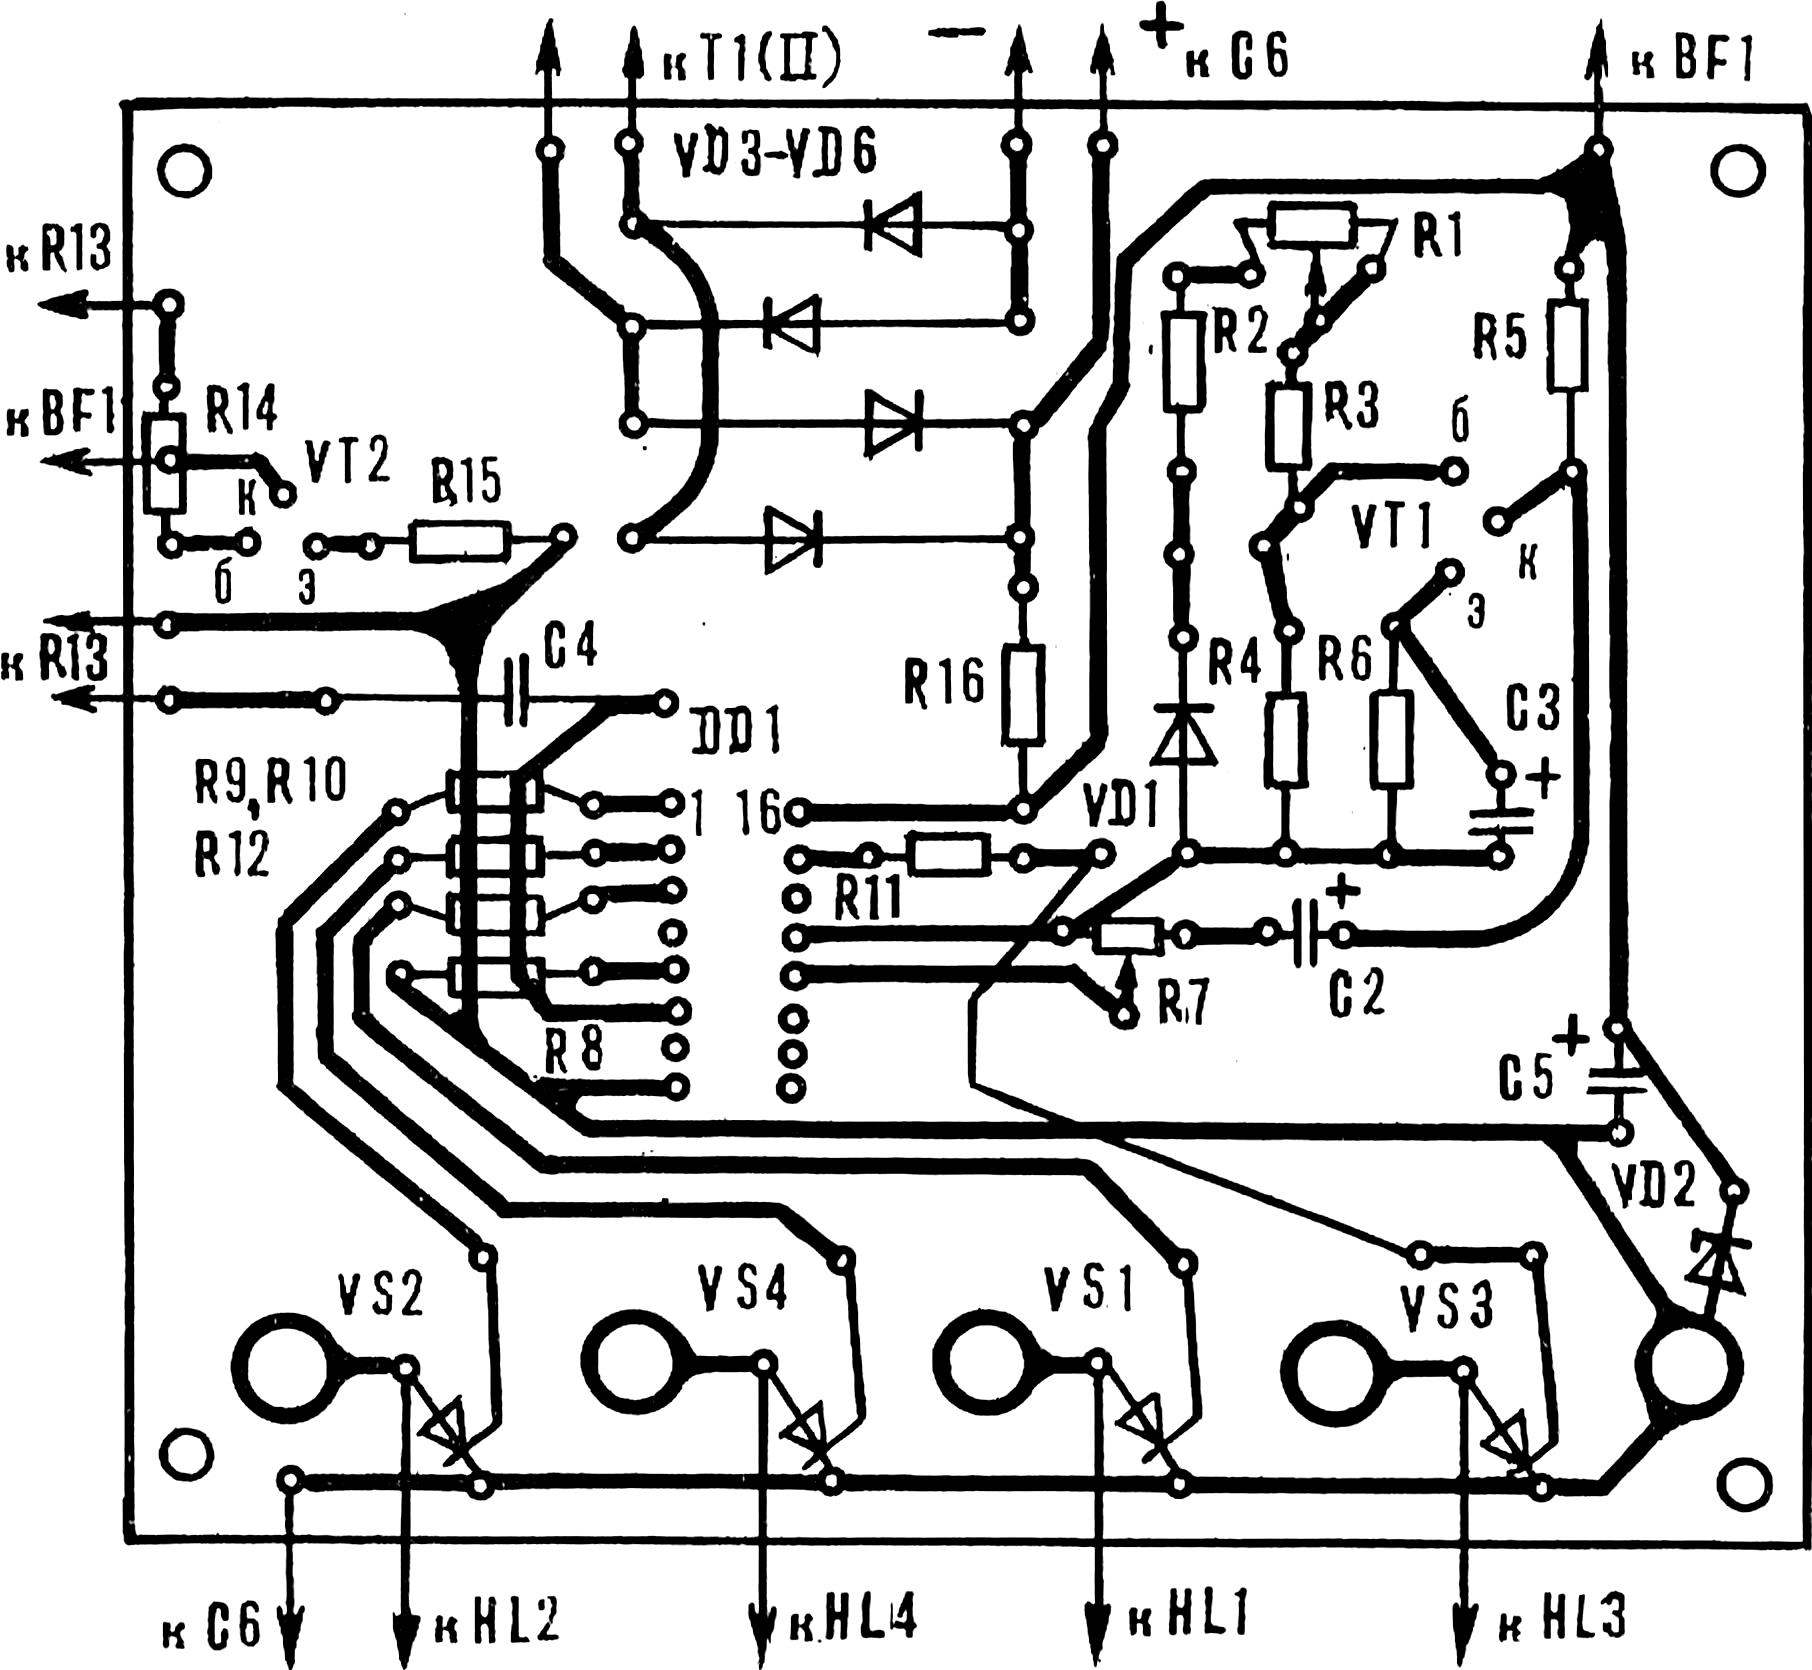 Circuit Board device with the layout of the elements.